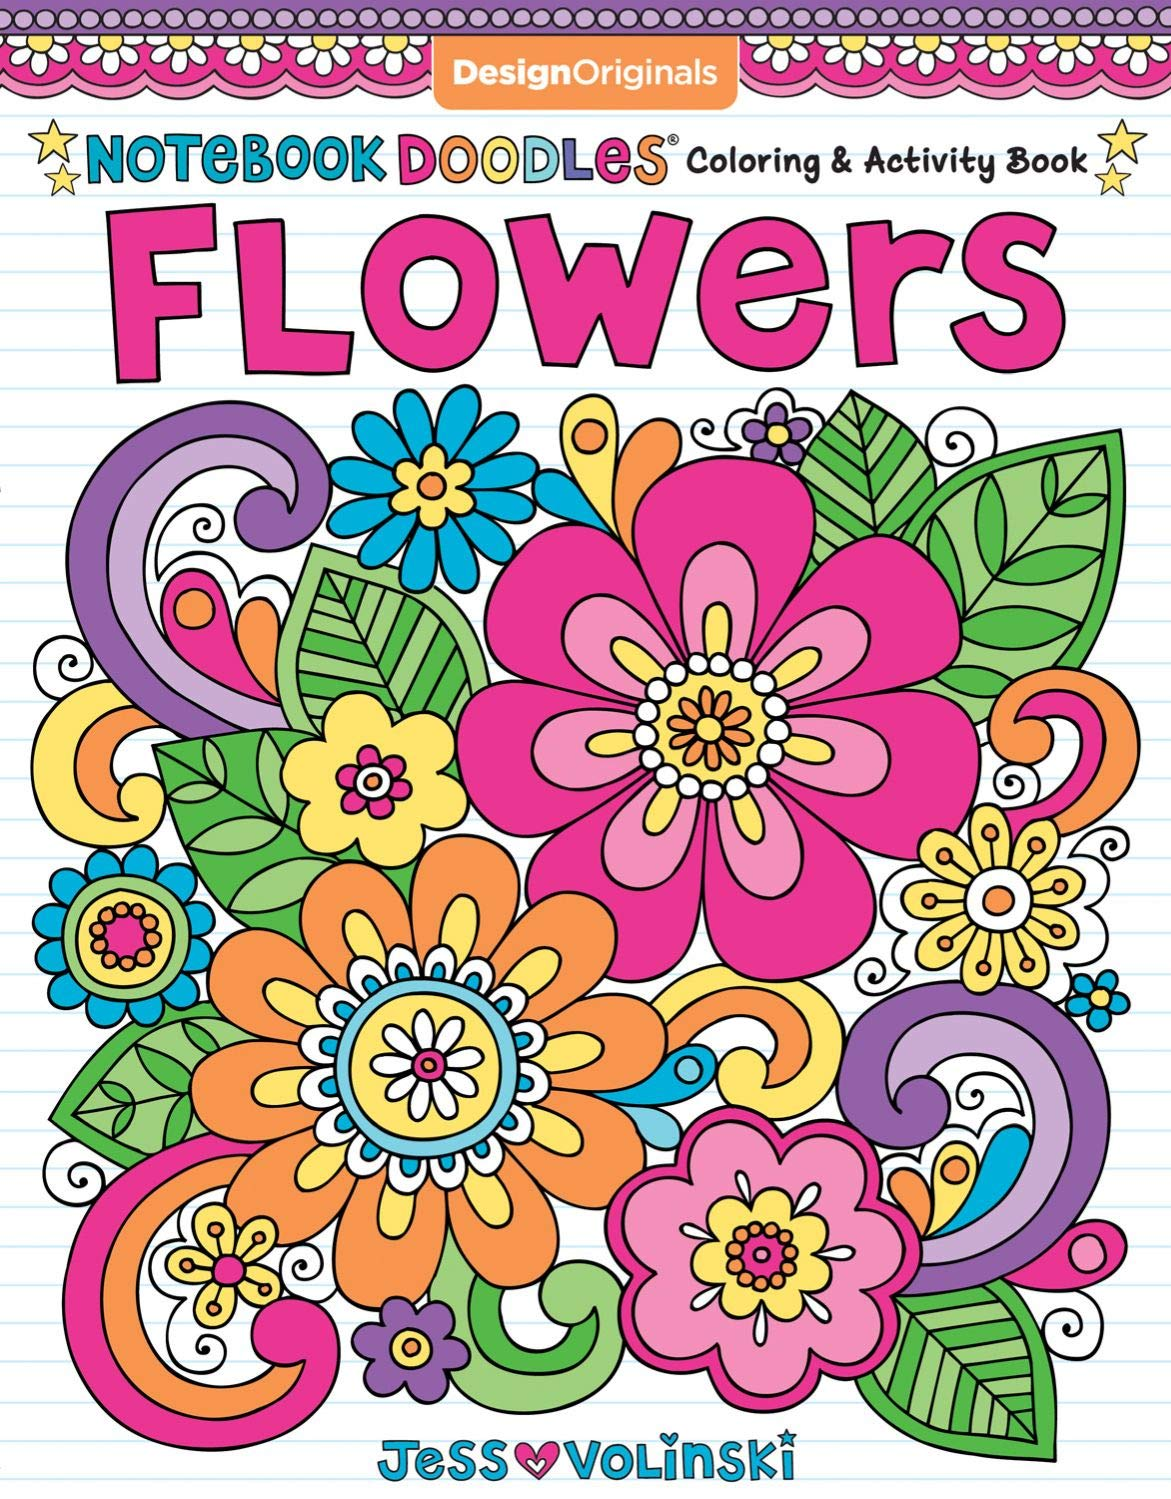 Notebook Doodles Flowers Coloring Activity Book Design